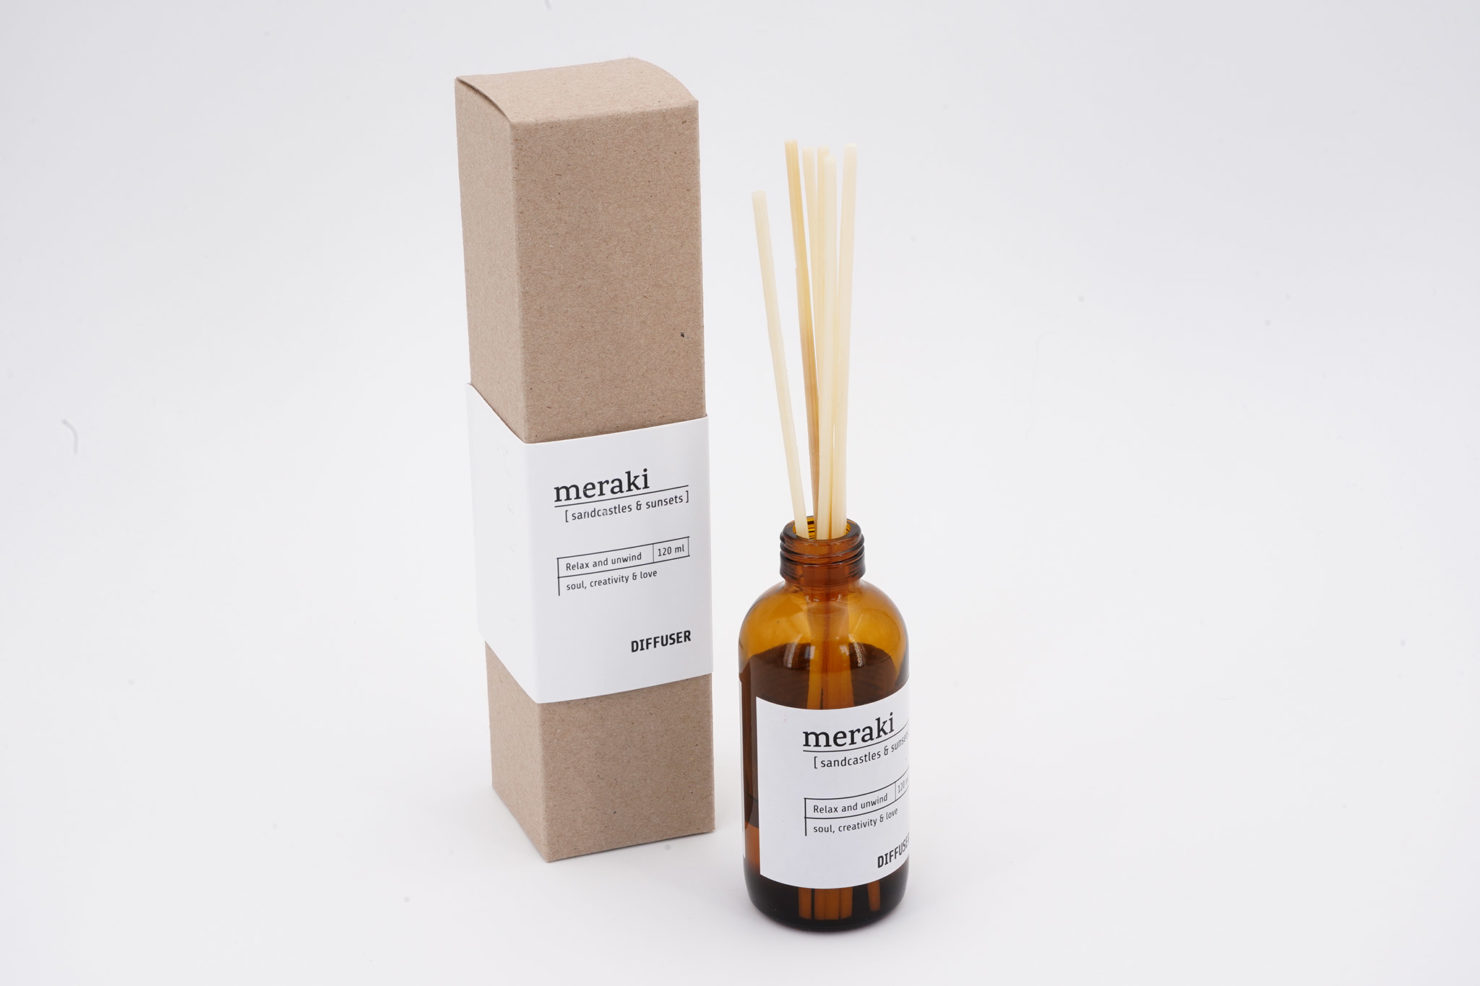 DIFFUSER 7 STICKS SANDCASTLES E SUNSETS 120 ML MERAKI